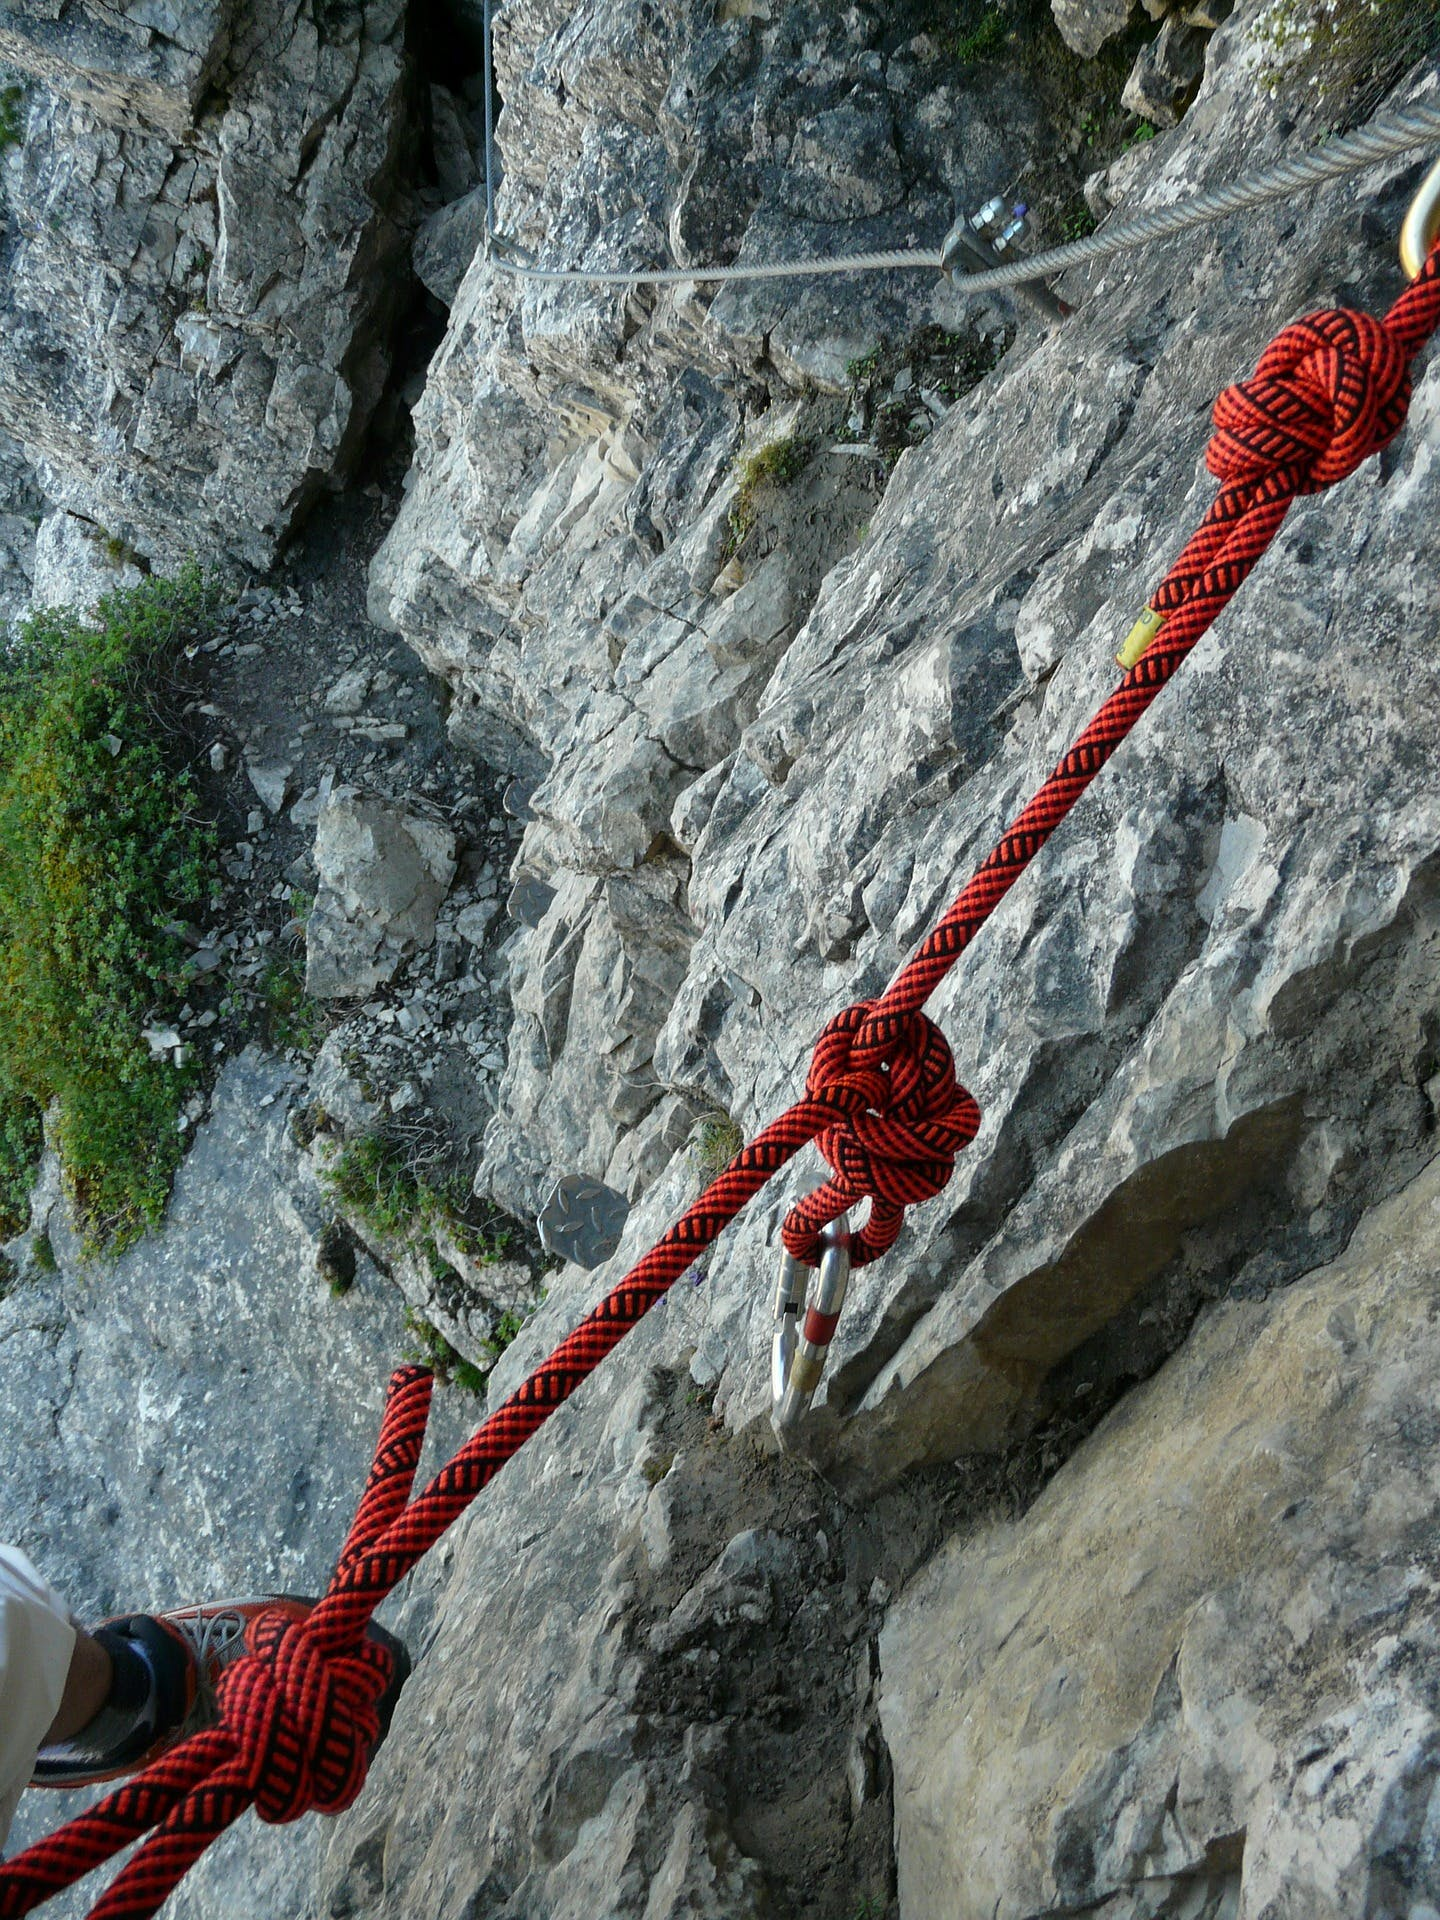 Climbing relies on very strong knots with tough ropes